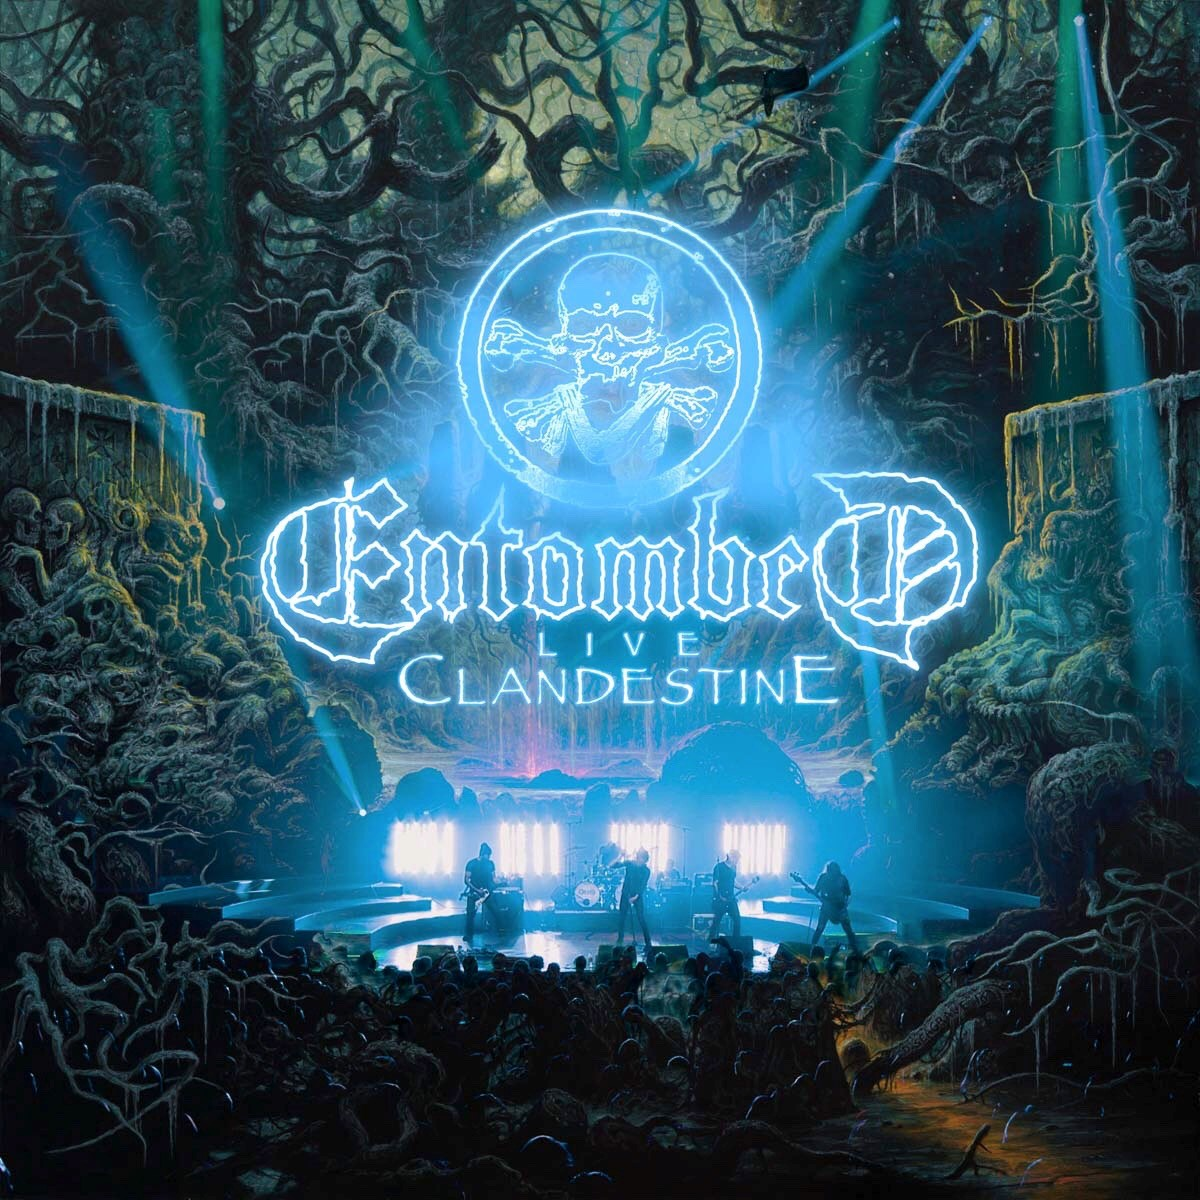 Entombed - Clandestine - Live [RSD Drops Aug 2020]